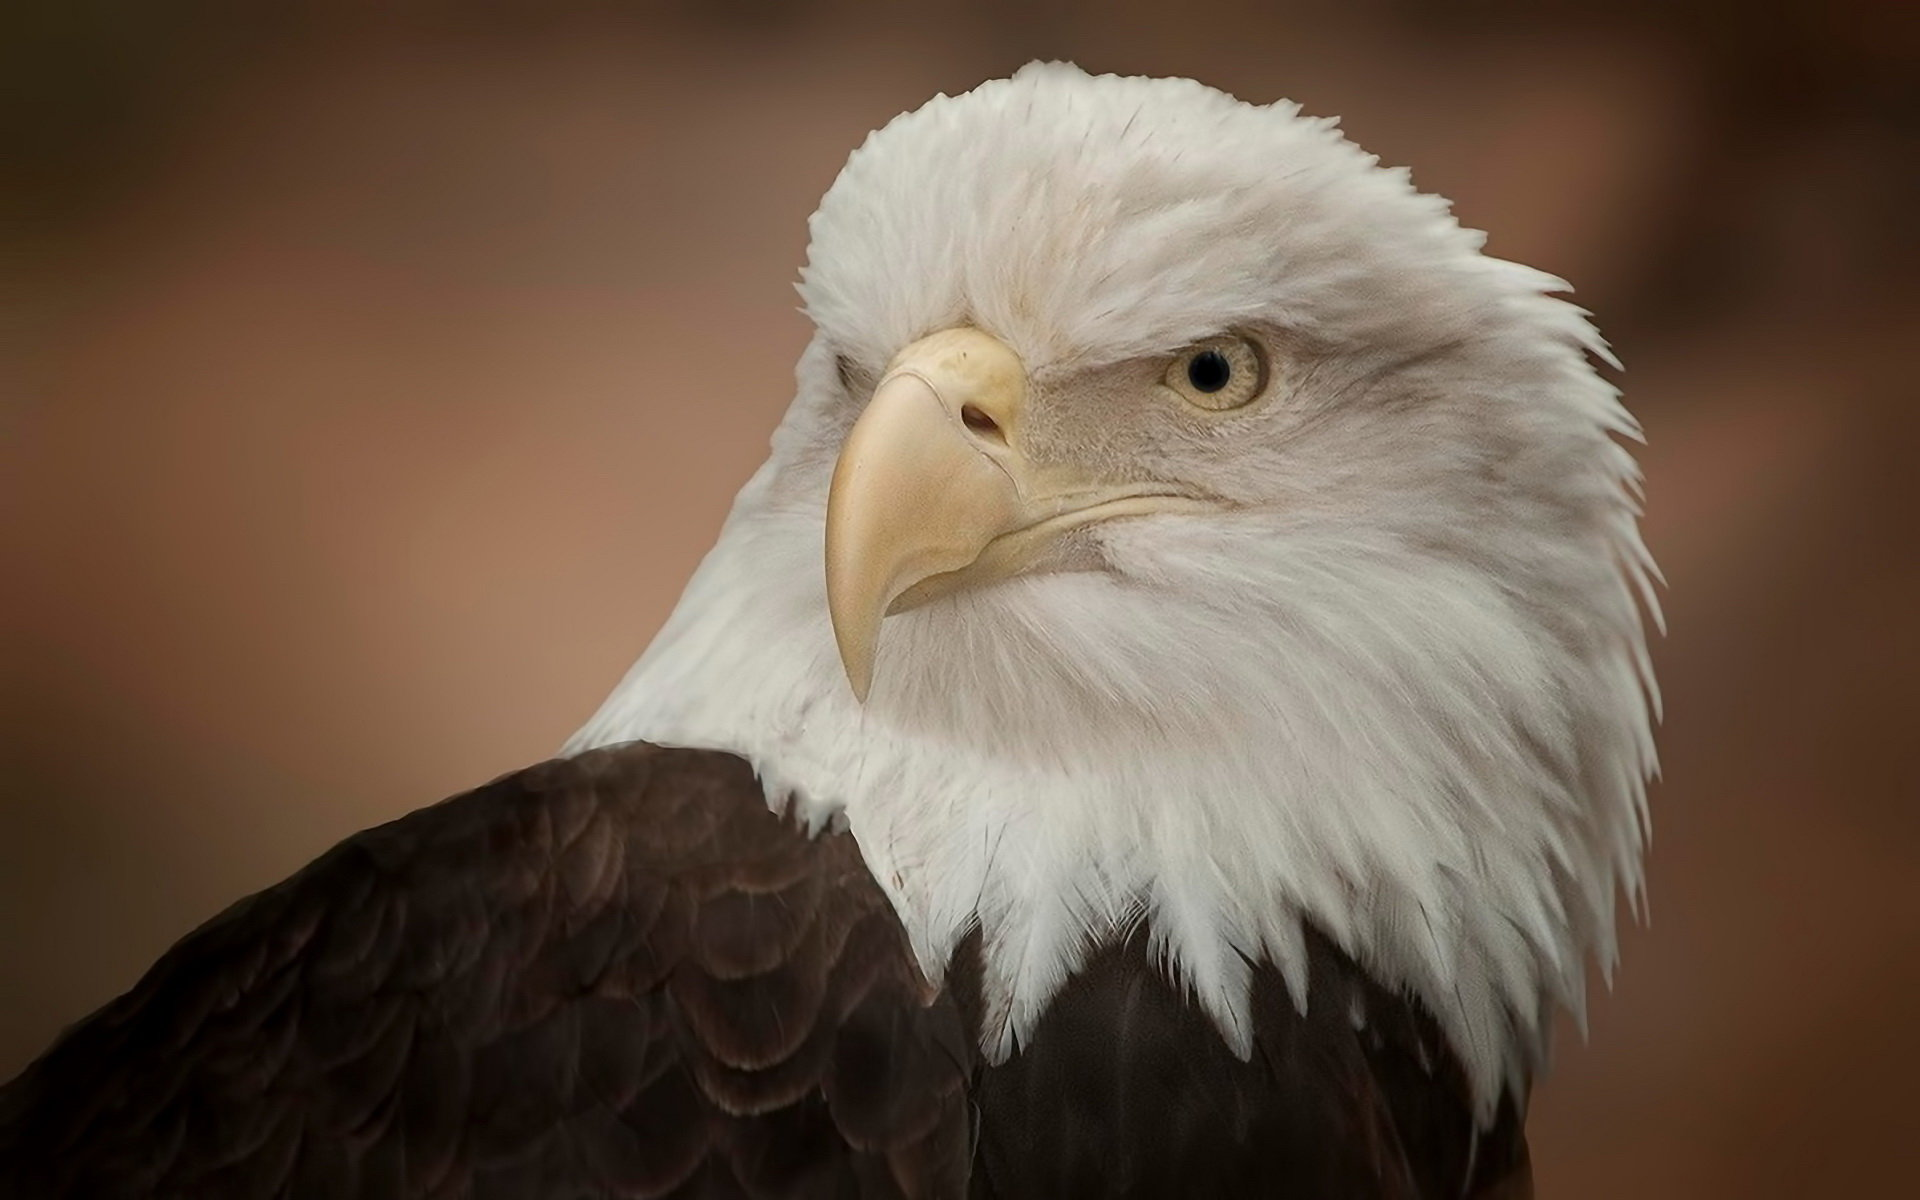 High resolution American Bald Eagle hd 1920x1200 background ID:68786 for PC